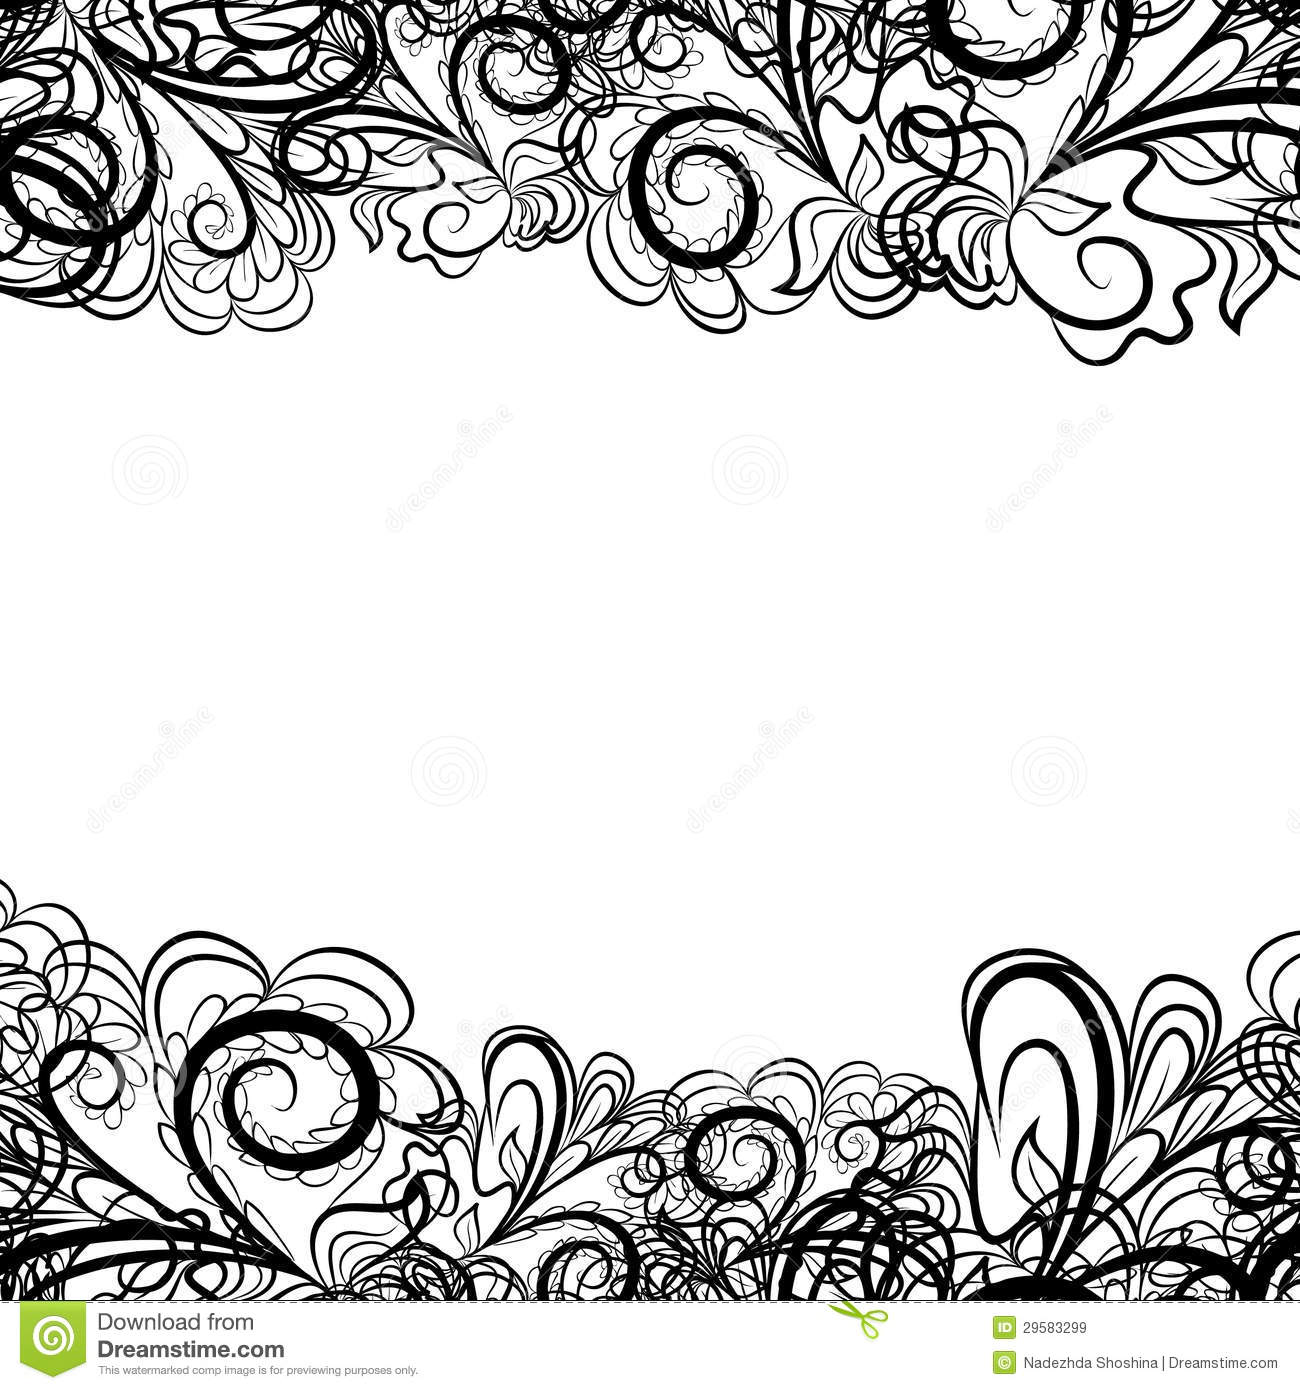 image freeuse download Lace free download best. Laces clipart banner.